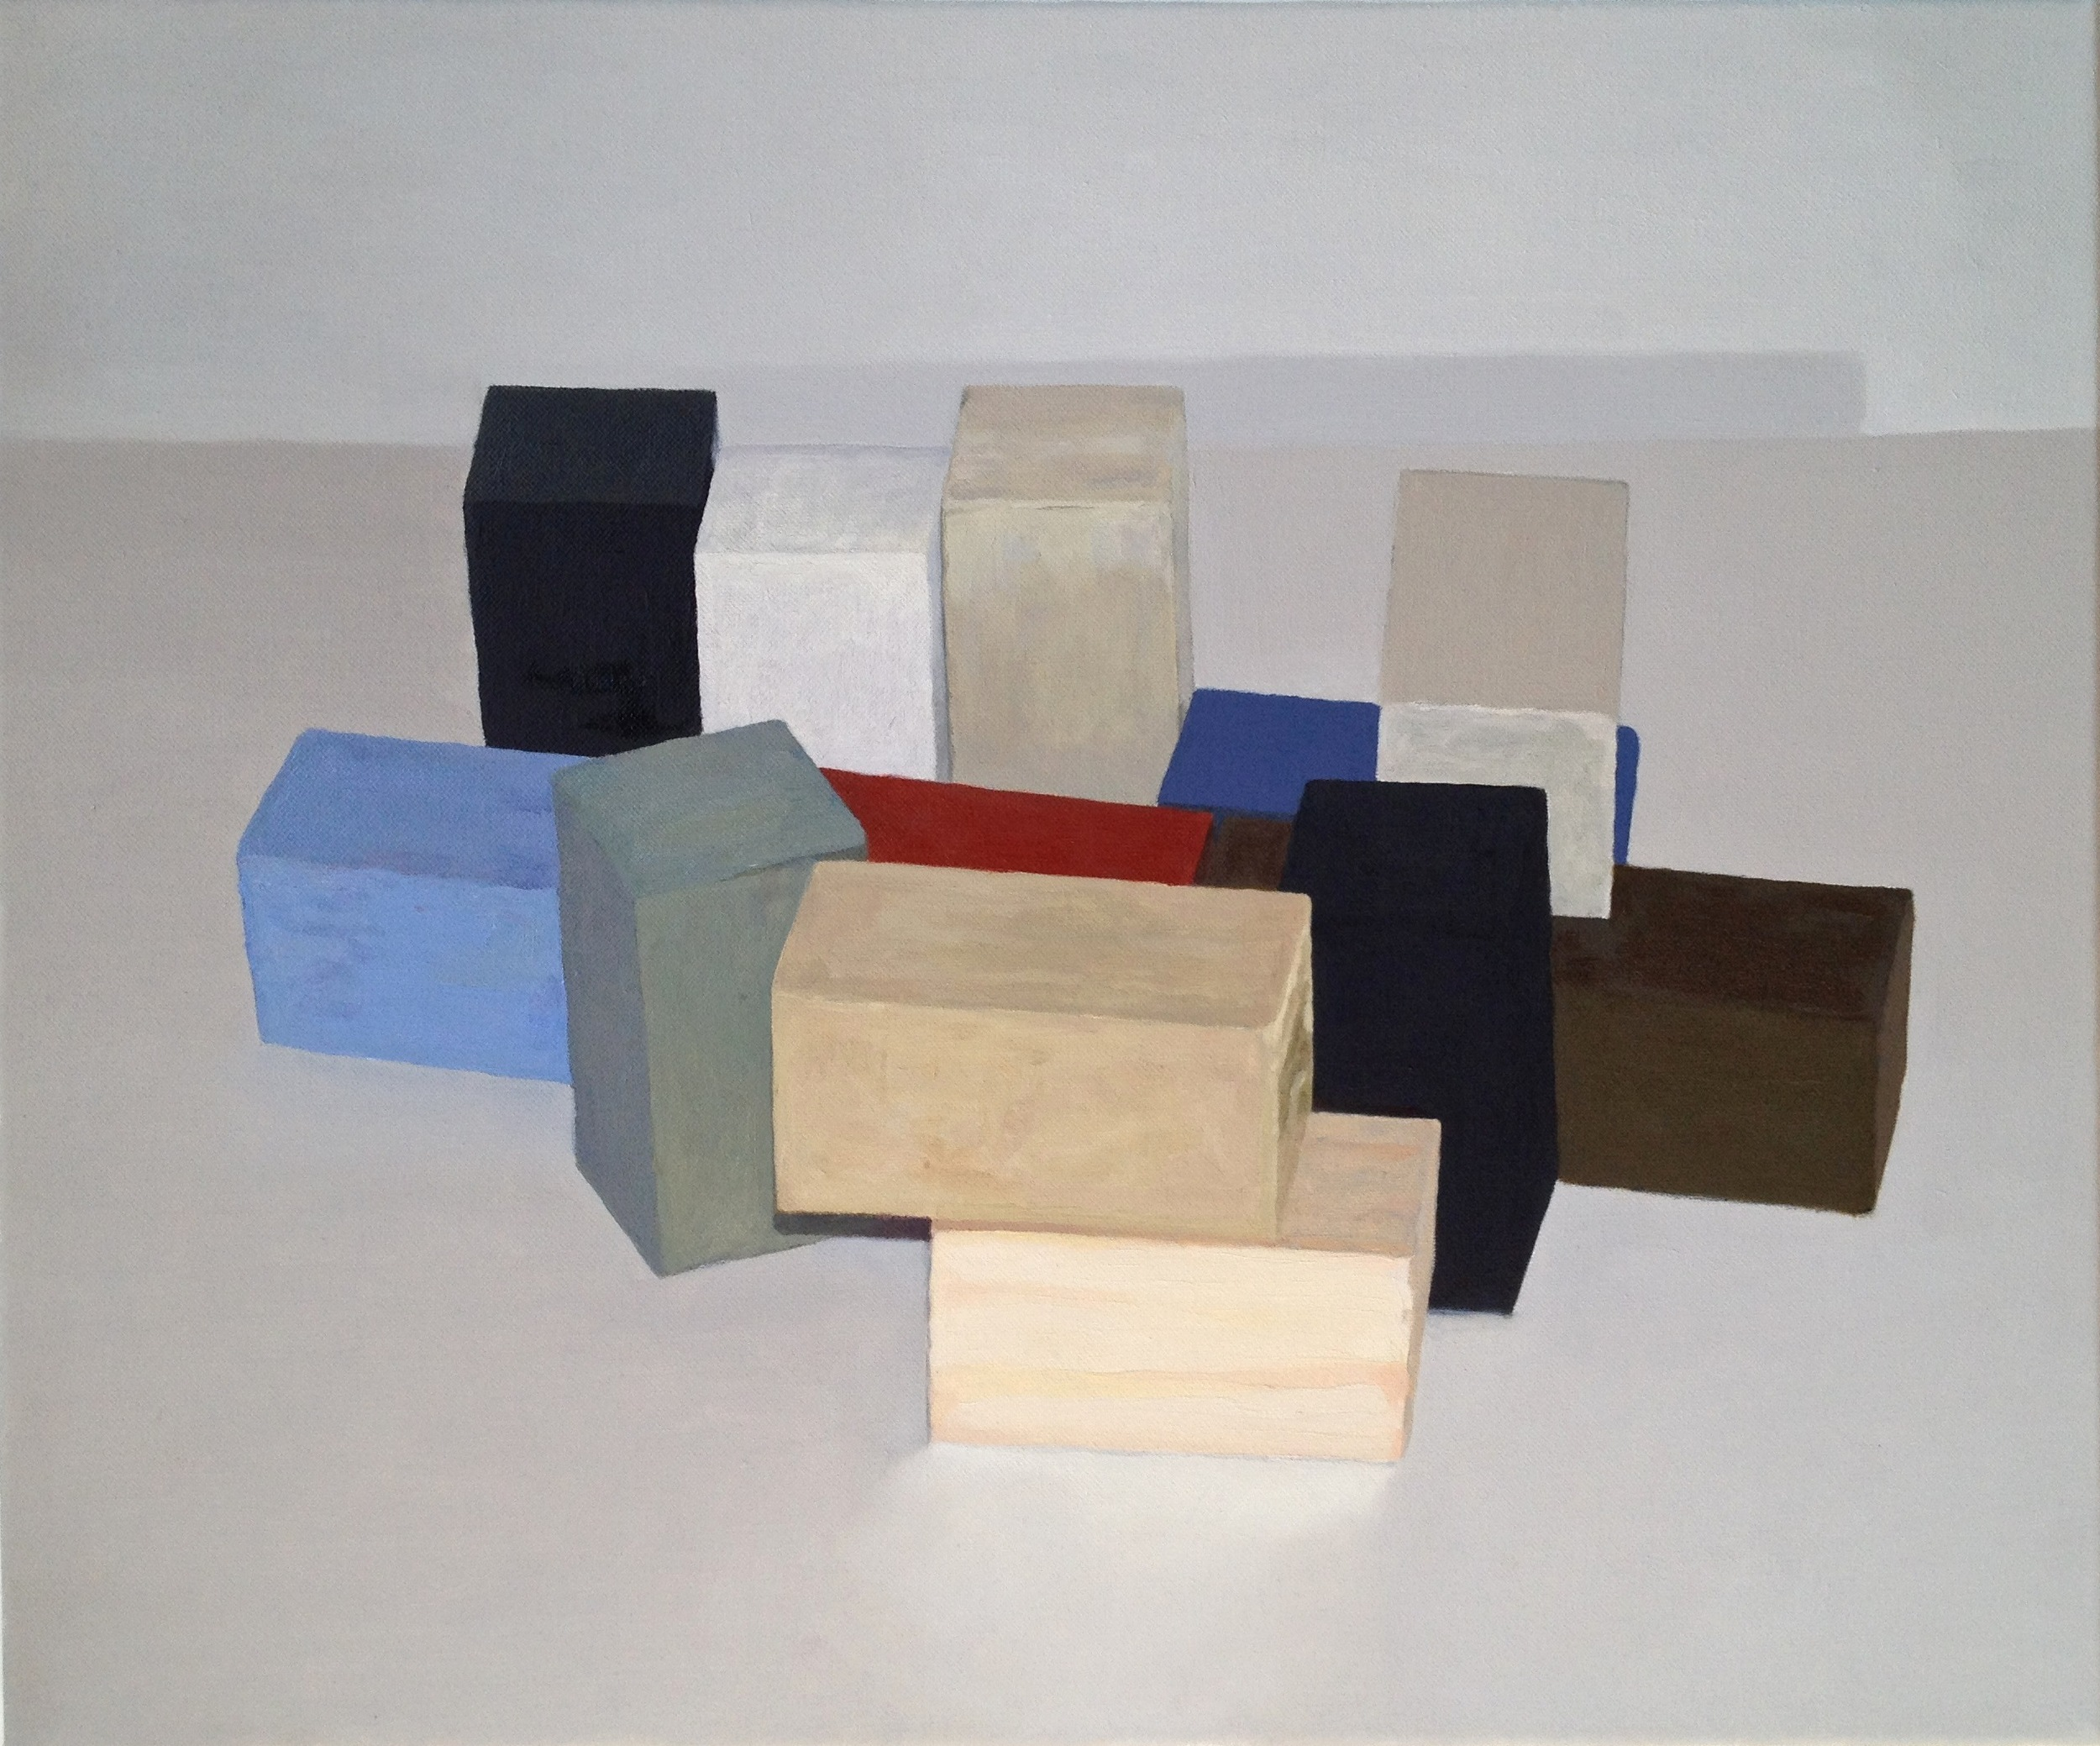 Morandi's Viewfinder, 2012 Oil on canvas, 20 x 24 inches